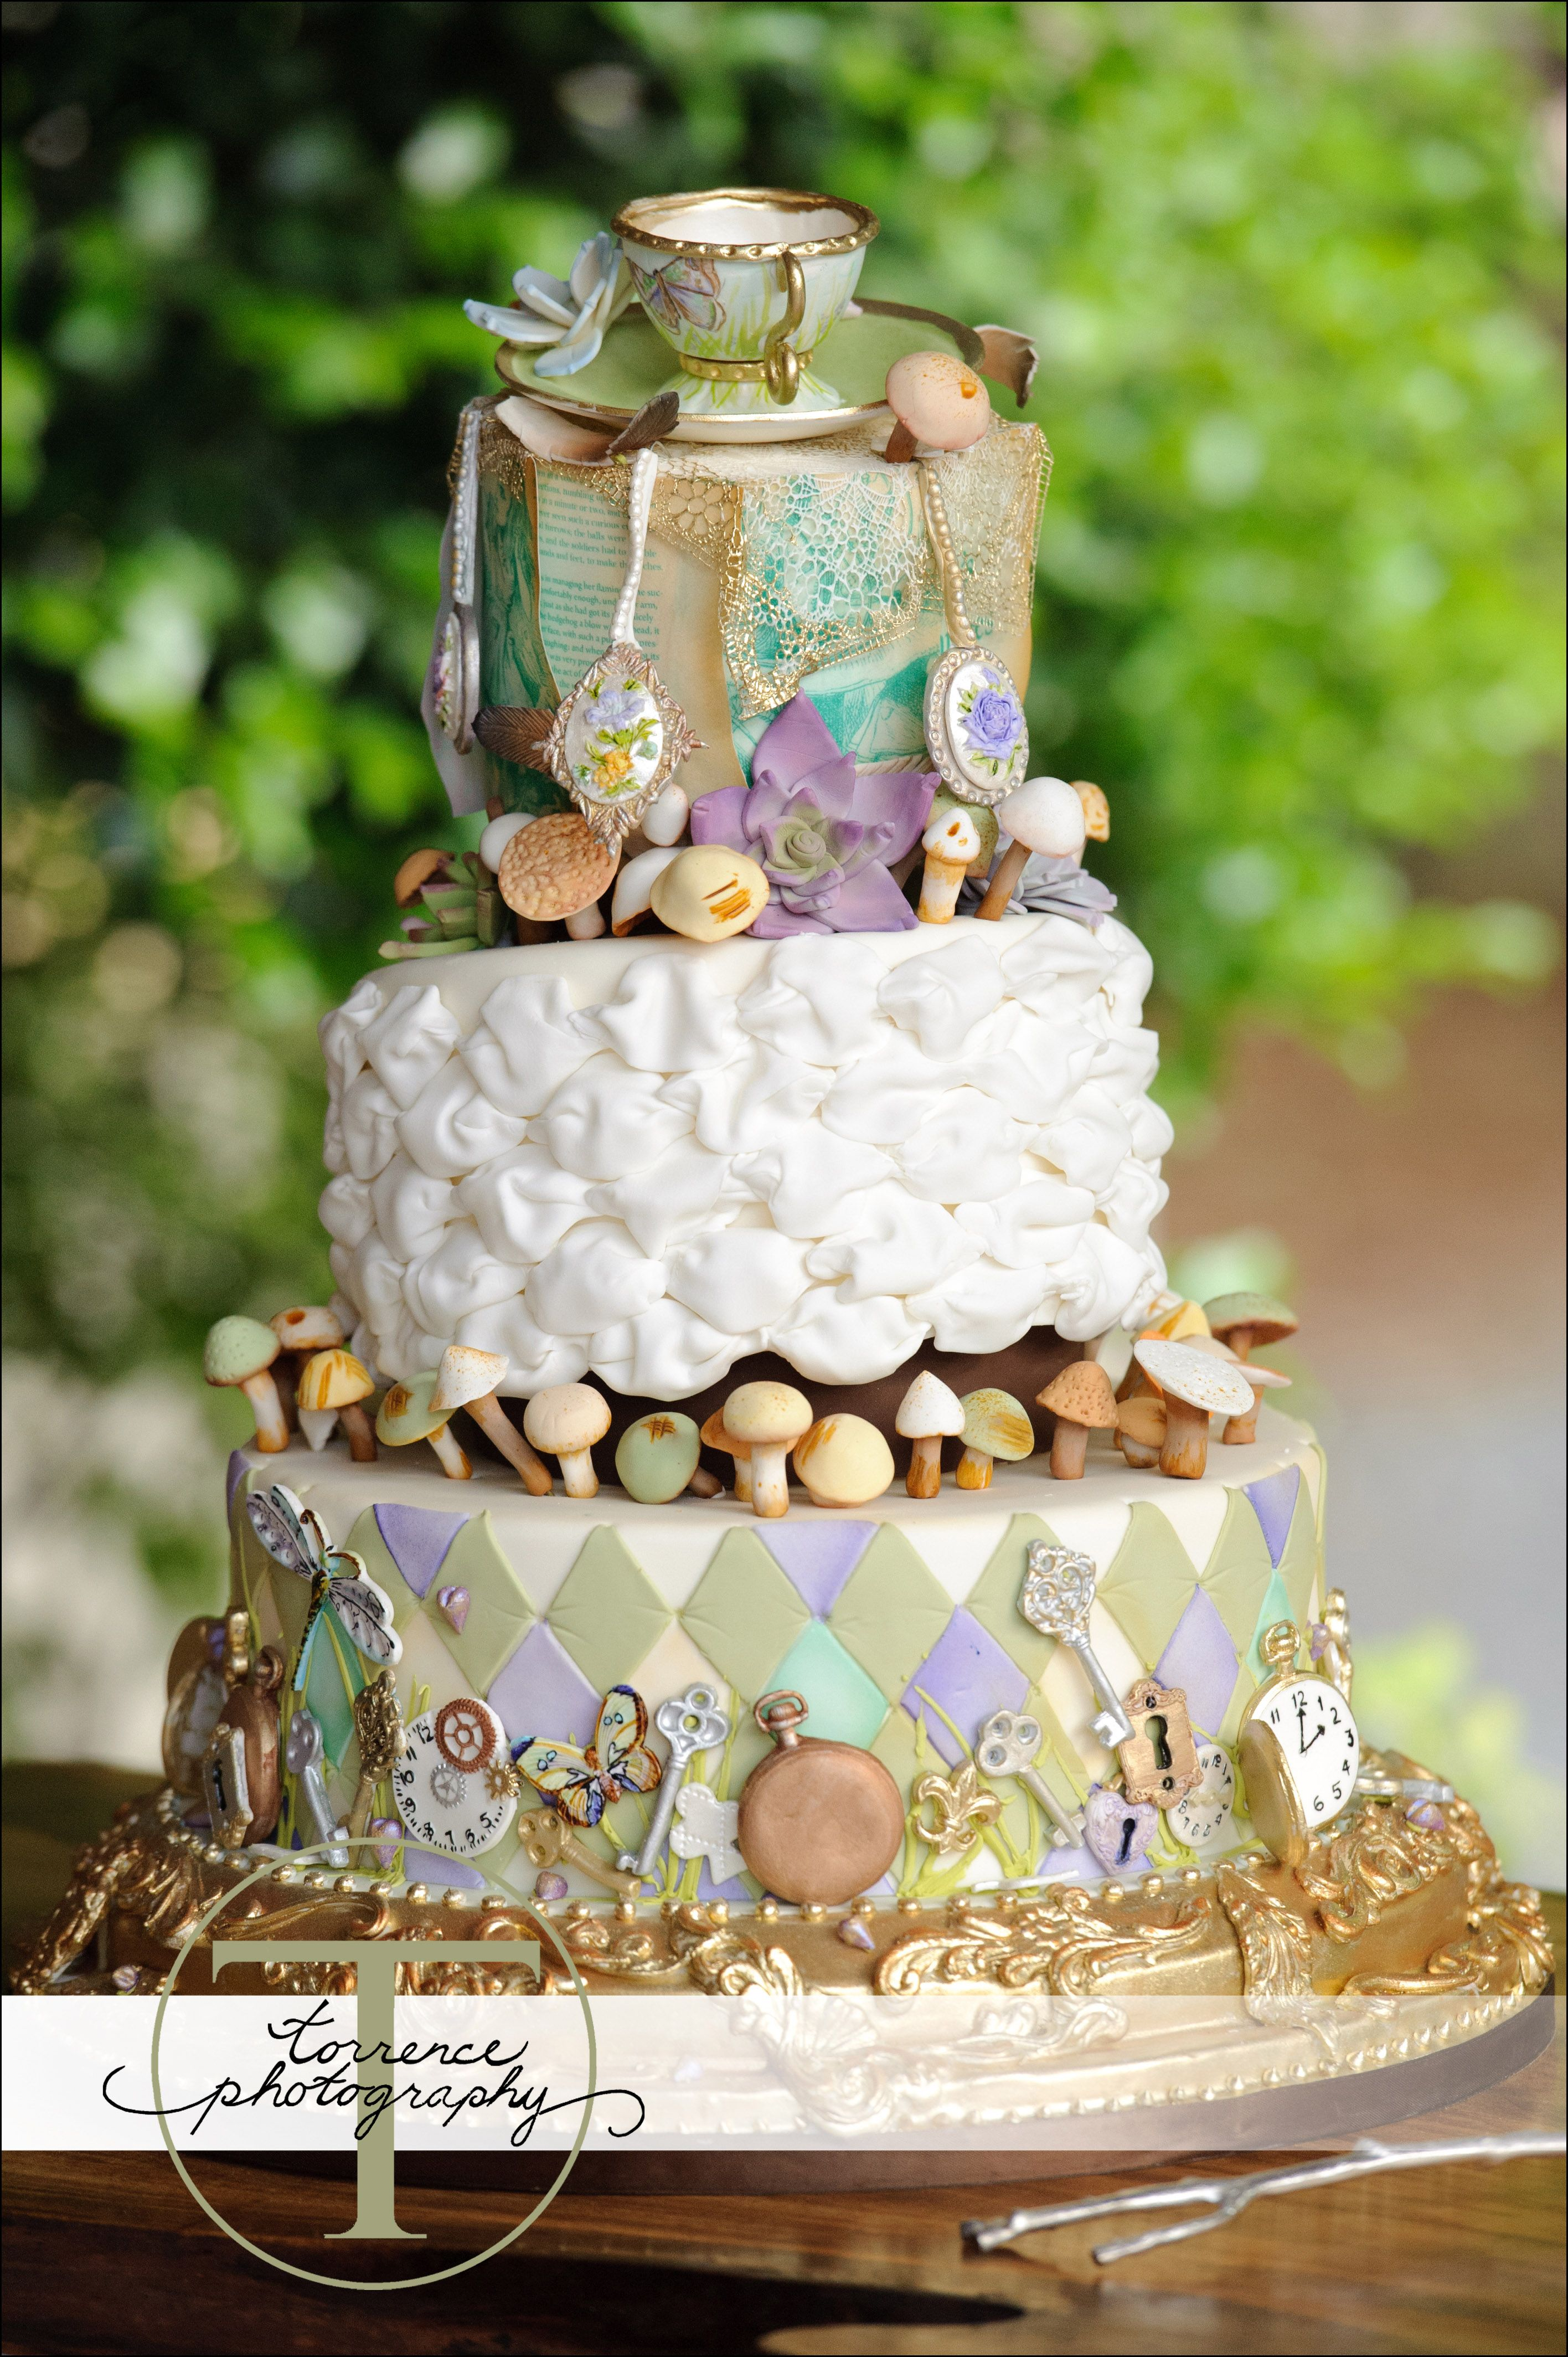 Fantastic Buttercream Wedding Cakes Tiny Wedding Cake Topper Square Wedding Cakes With Cupcakes Italian Wedding Cake Young Elegant Wedding Cakes RedAverage Wedding Cake Cost Alice In Wonderland Wedding Cake | Top Secret Wedding Ideas ..